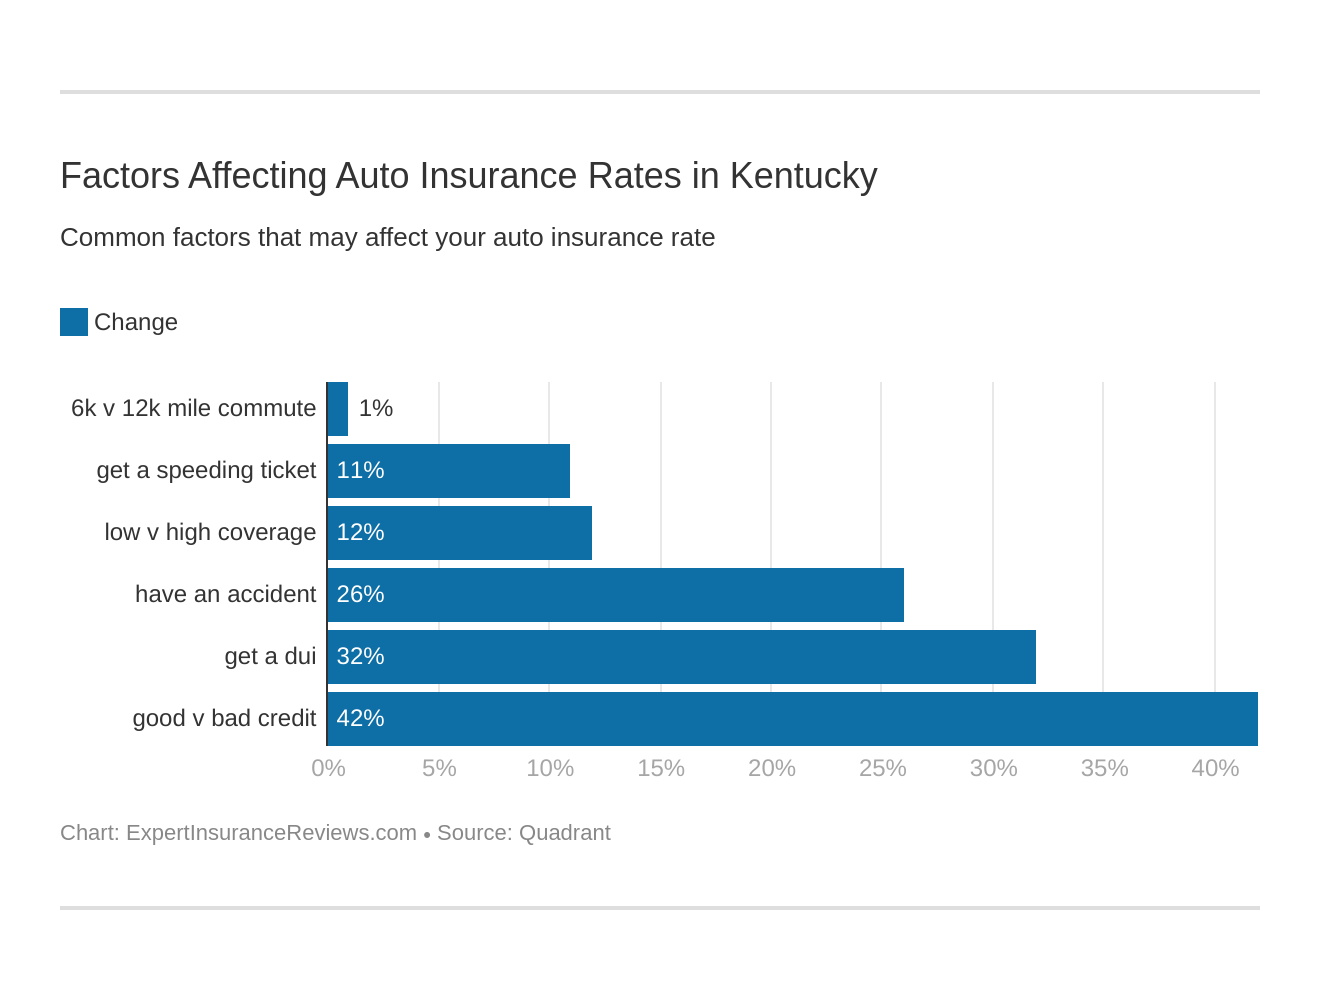 Factors Affecting Auto Insurance Rates in Kentucky